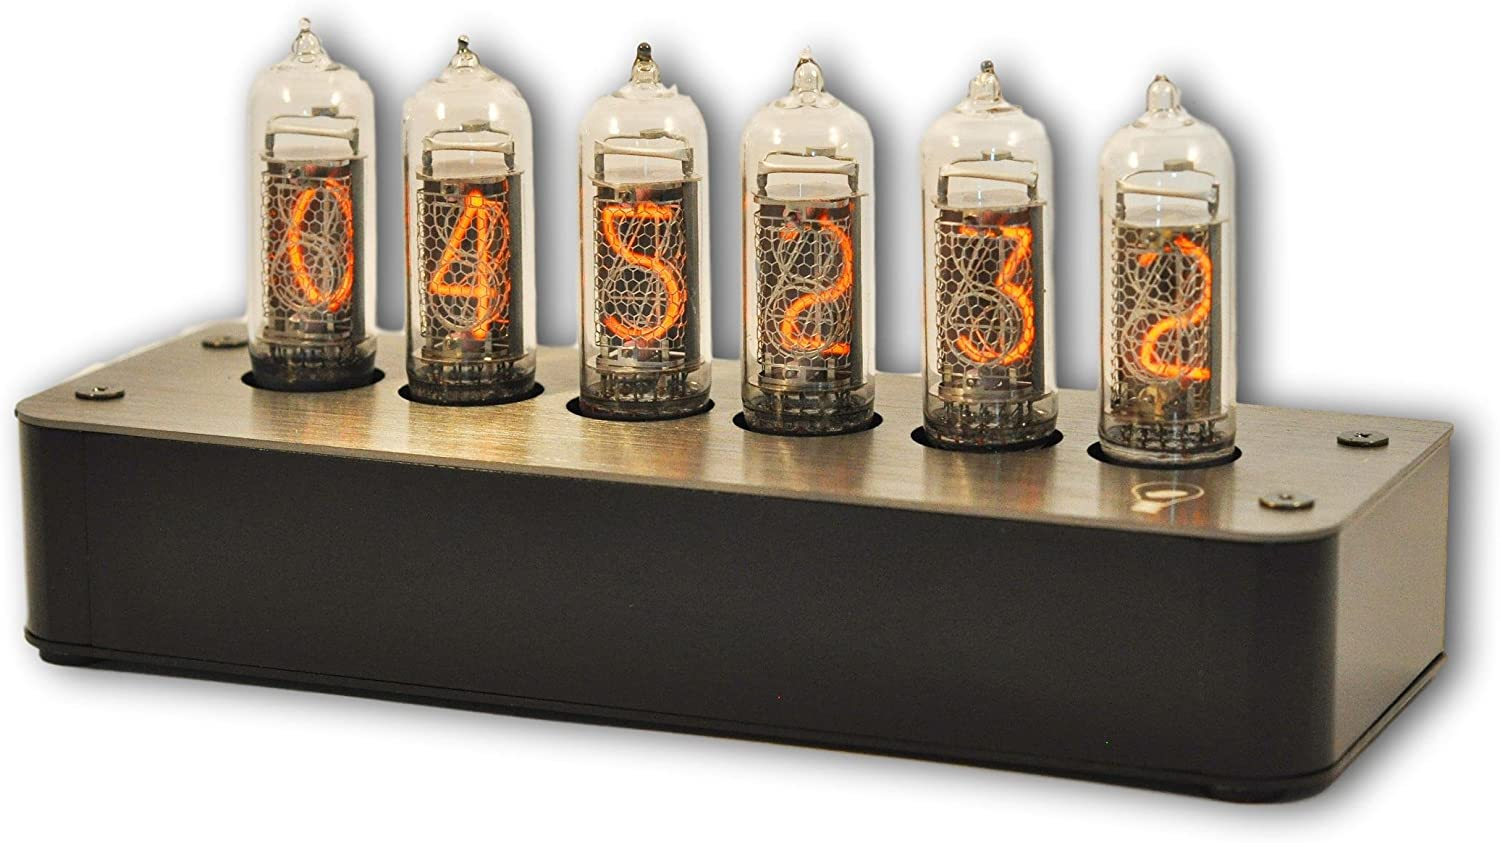 Makenology Nixie Tube Clock Boulder 2 - Stainless Steel Black Gray